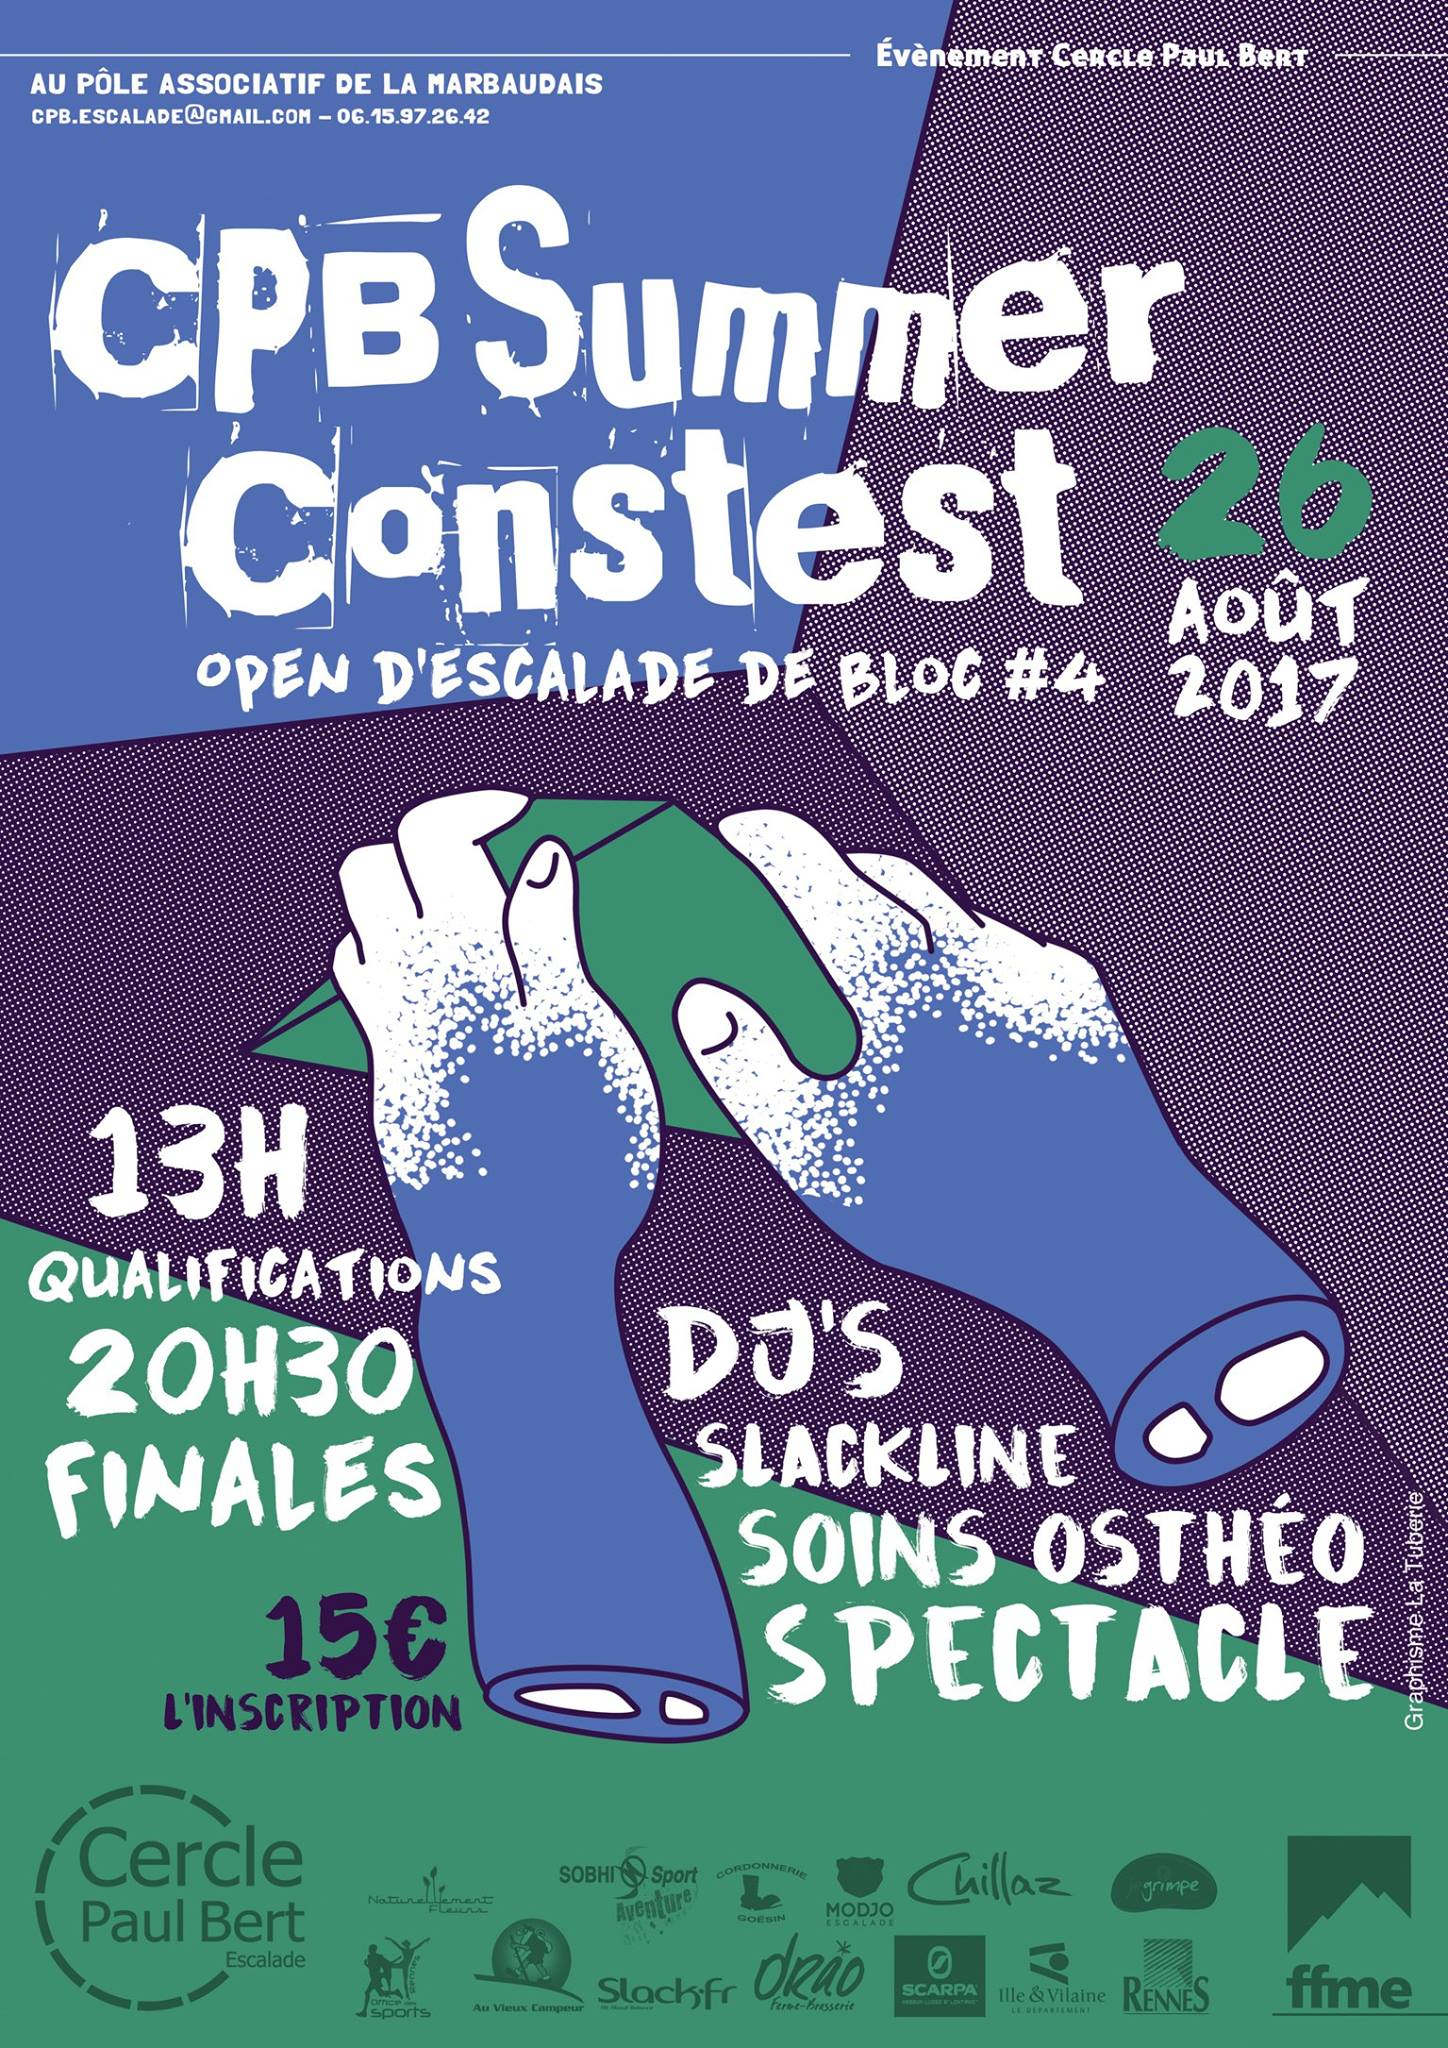 CPB summer contest 2017